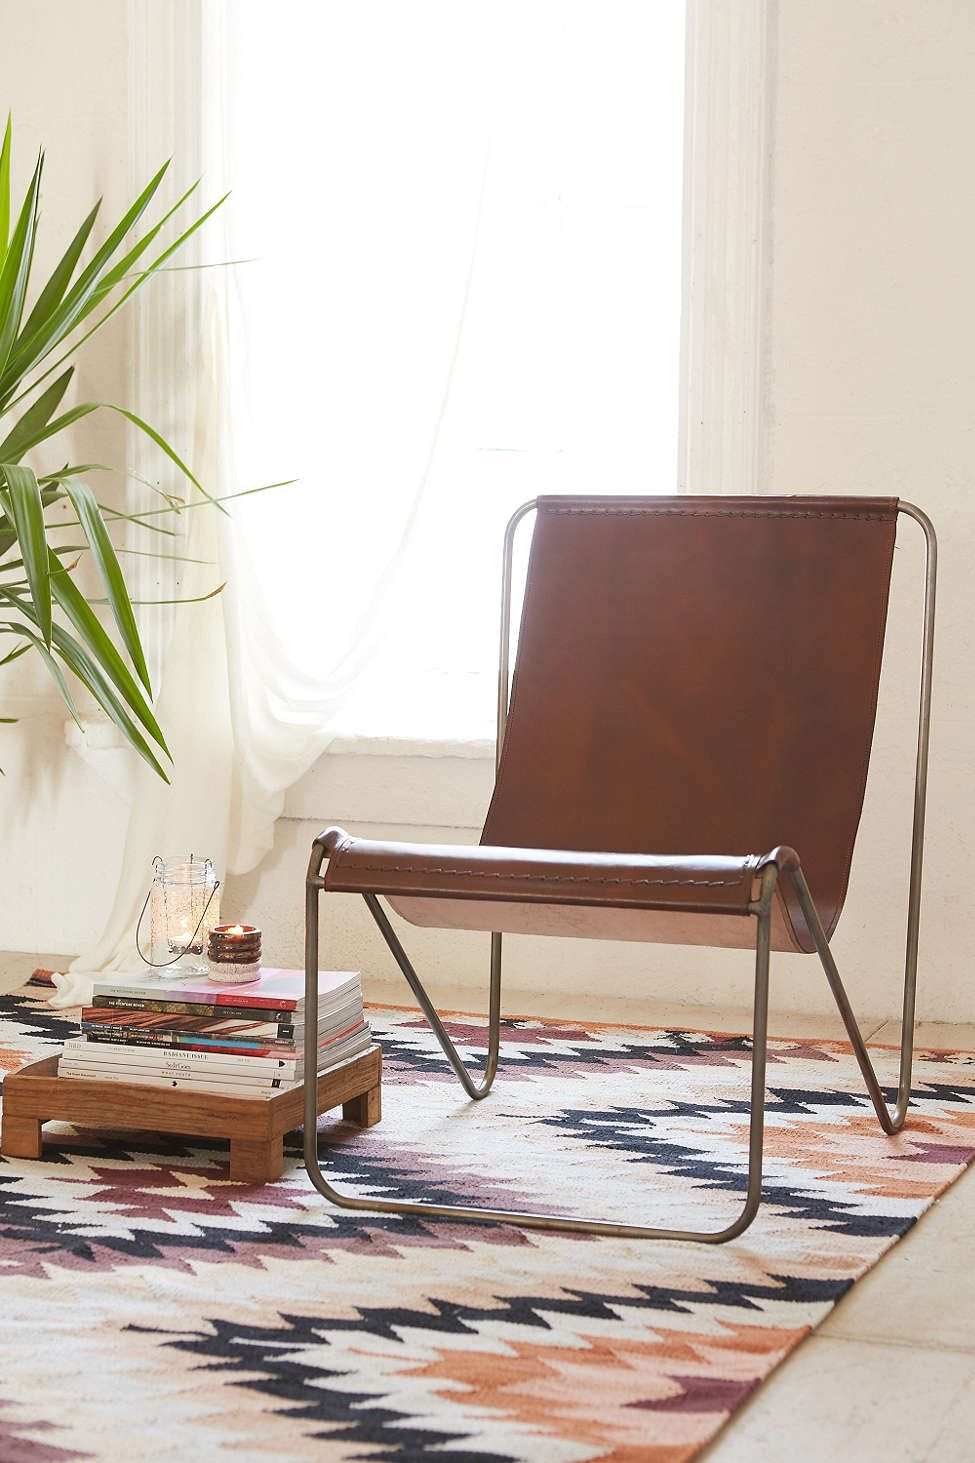 Maddox Leather Sling Chair | Chairs | Pinterest | Chair, Leather With Maddox Oversized Sofa Chairs (Image 8 of 20)